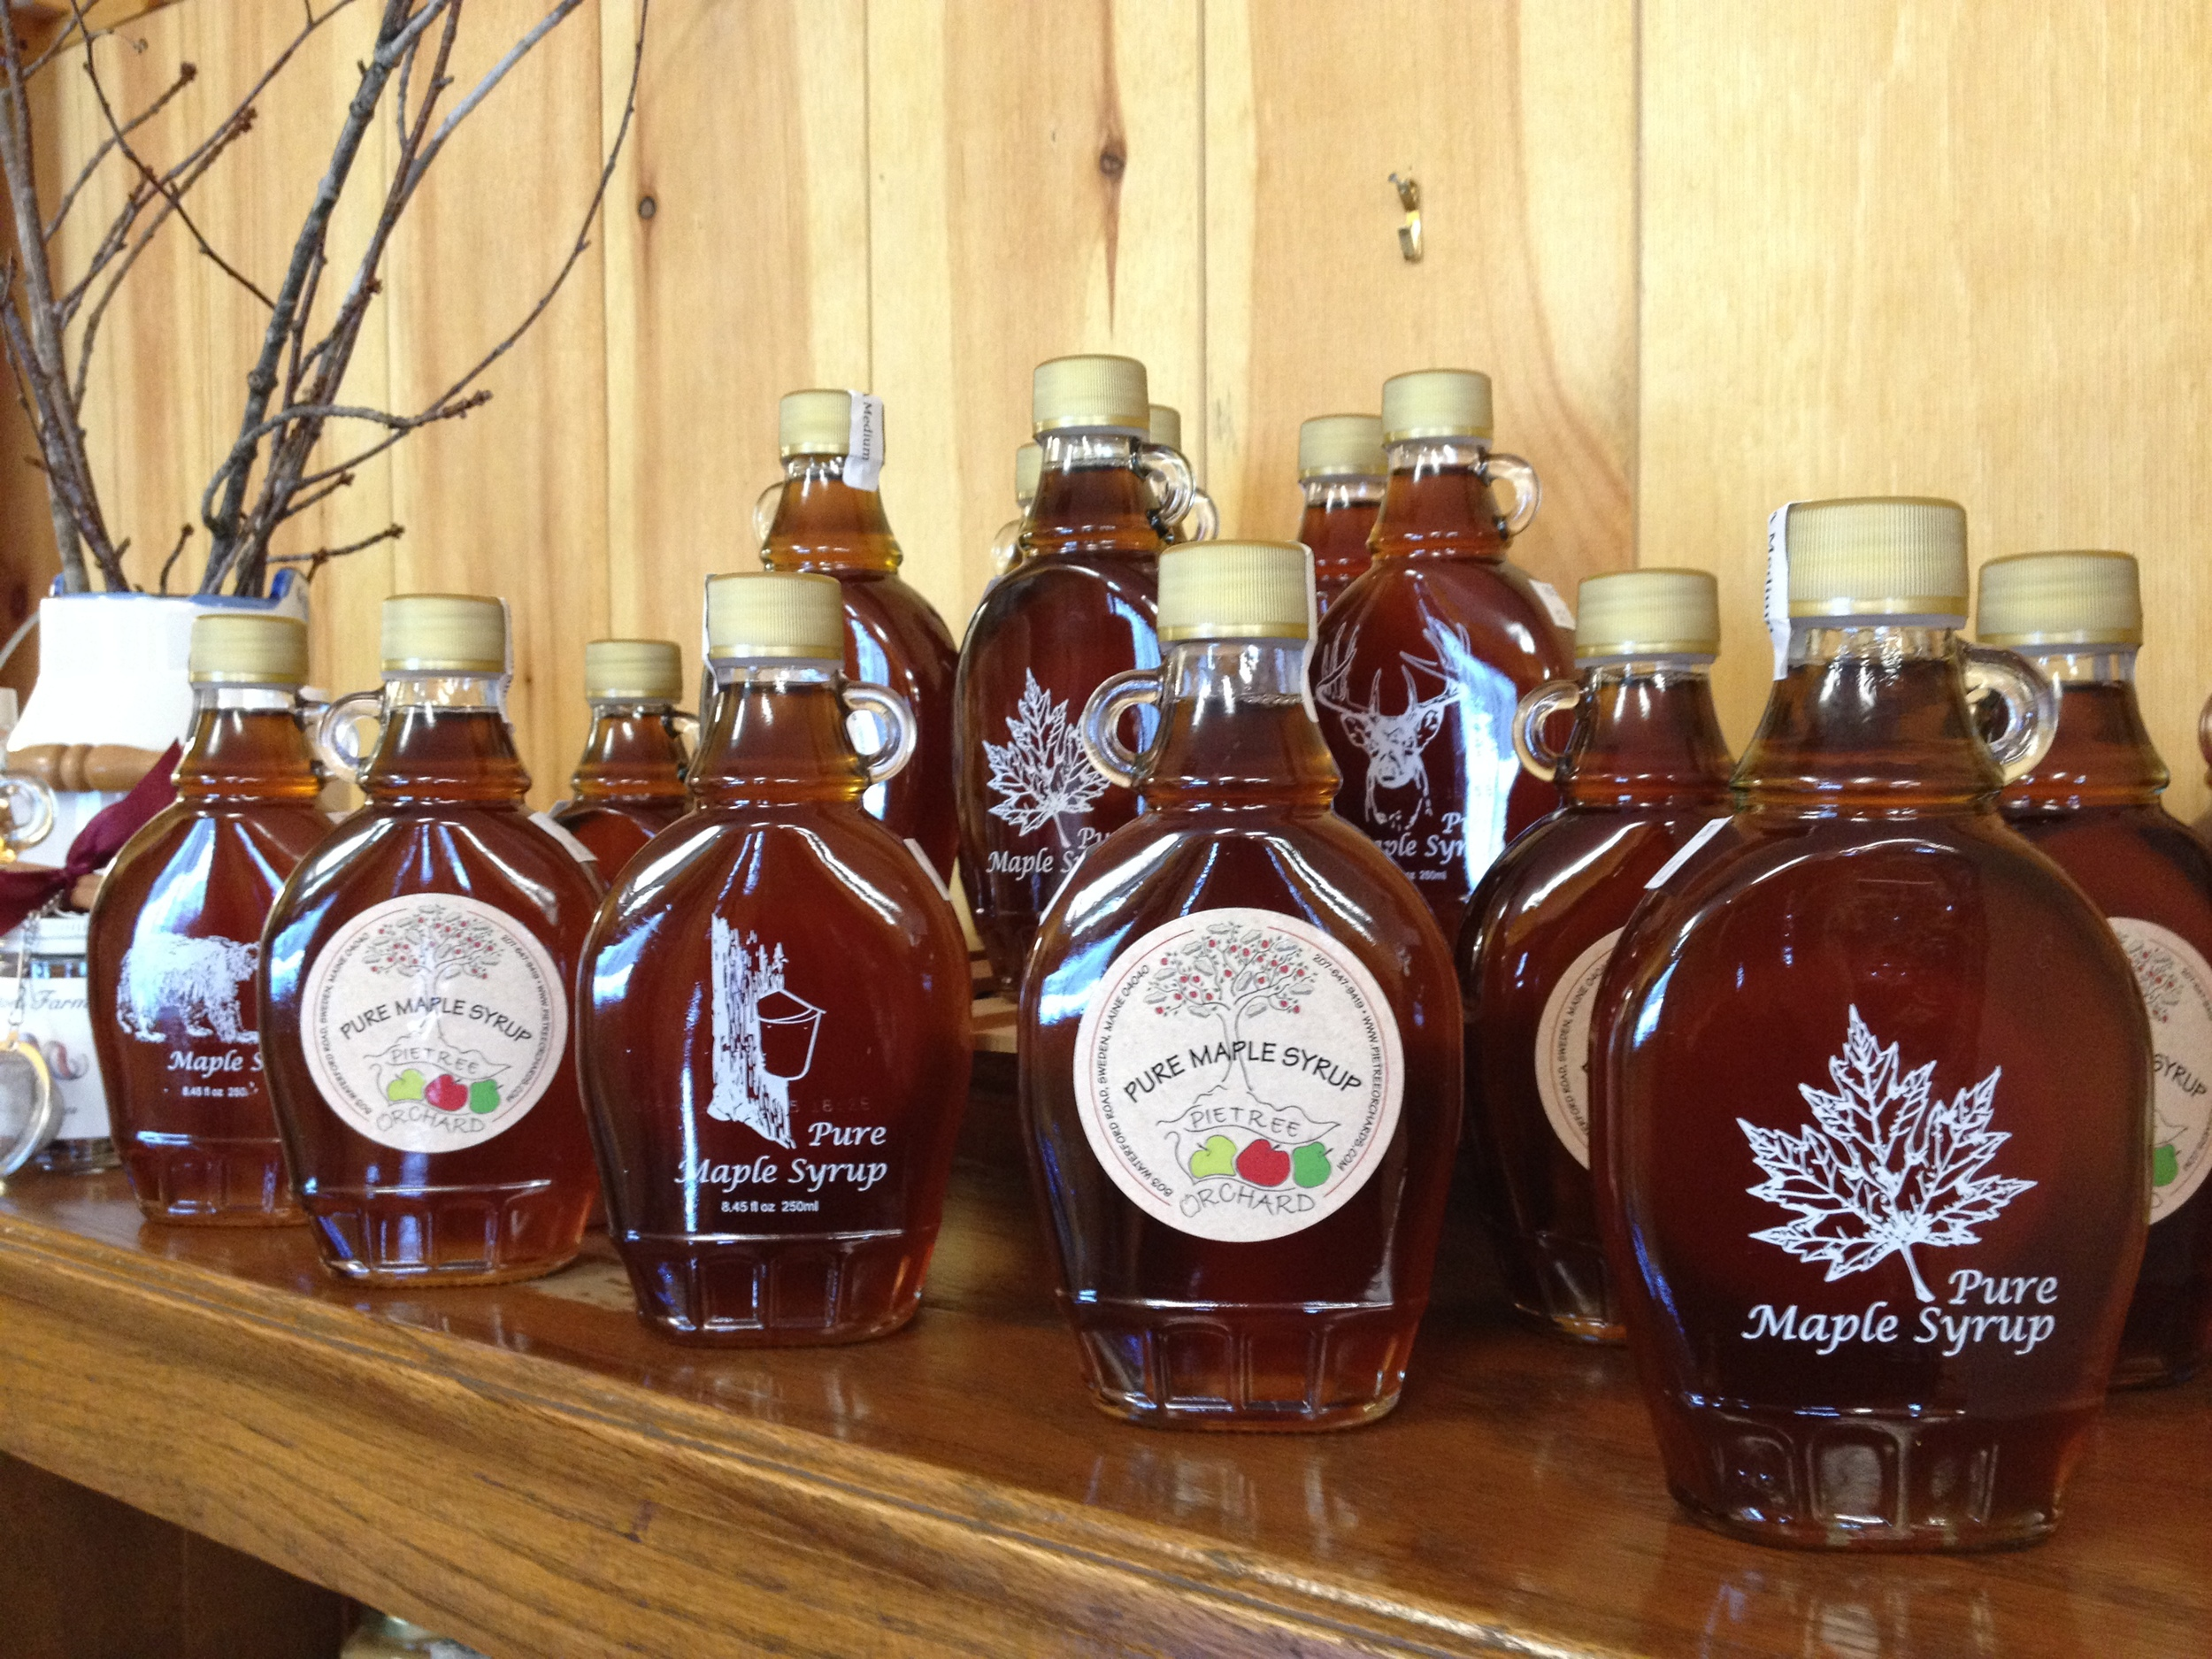 Pietree Maple Syrup